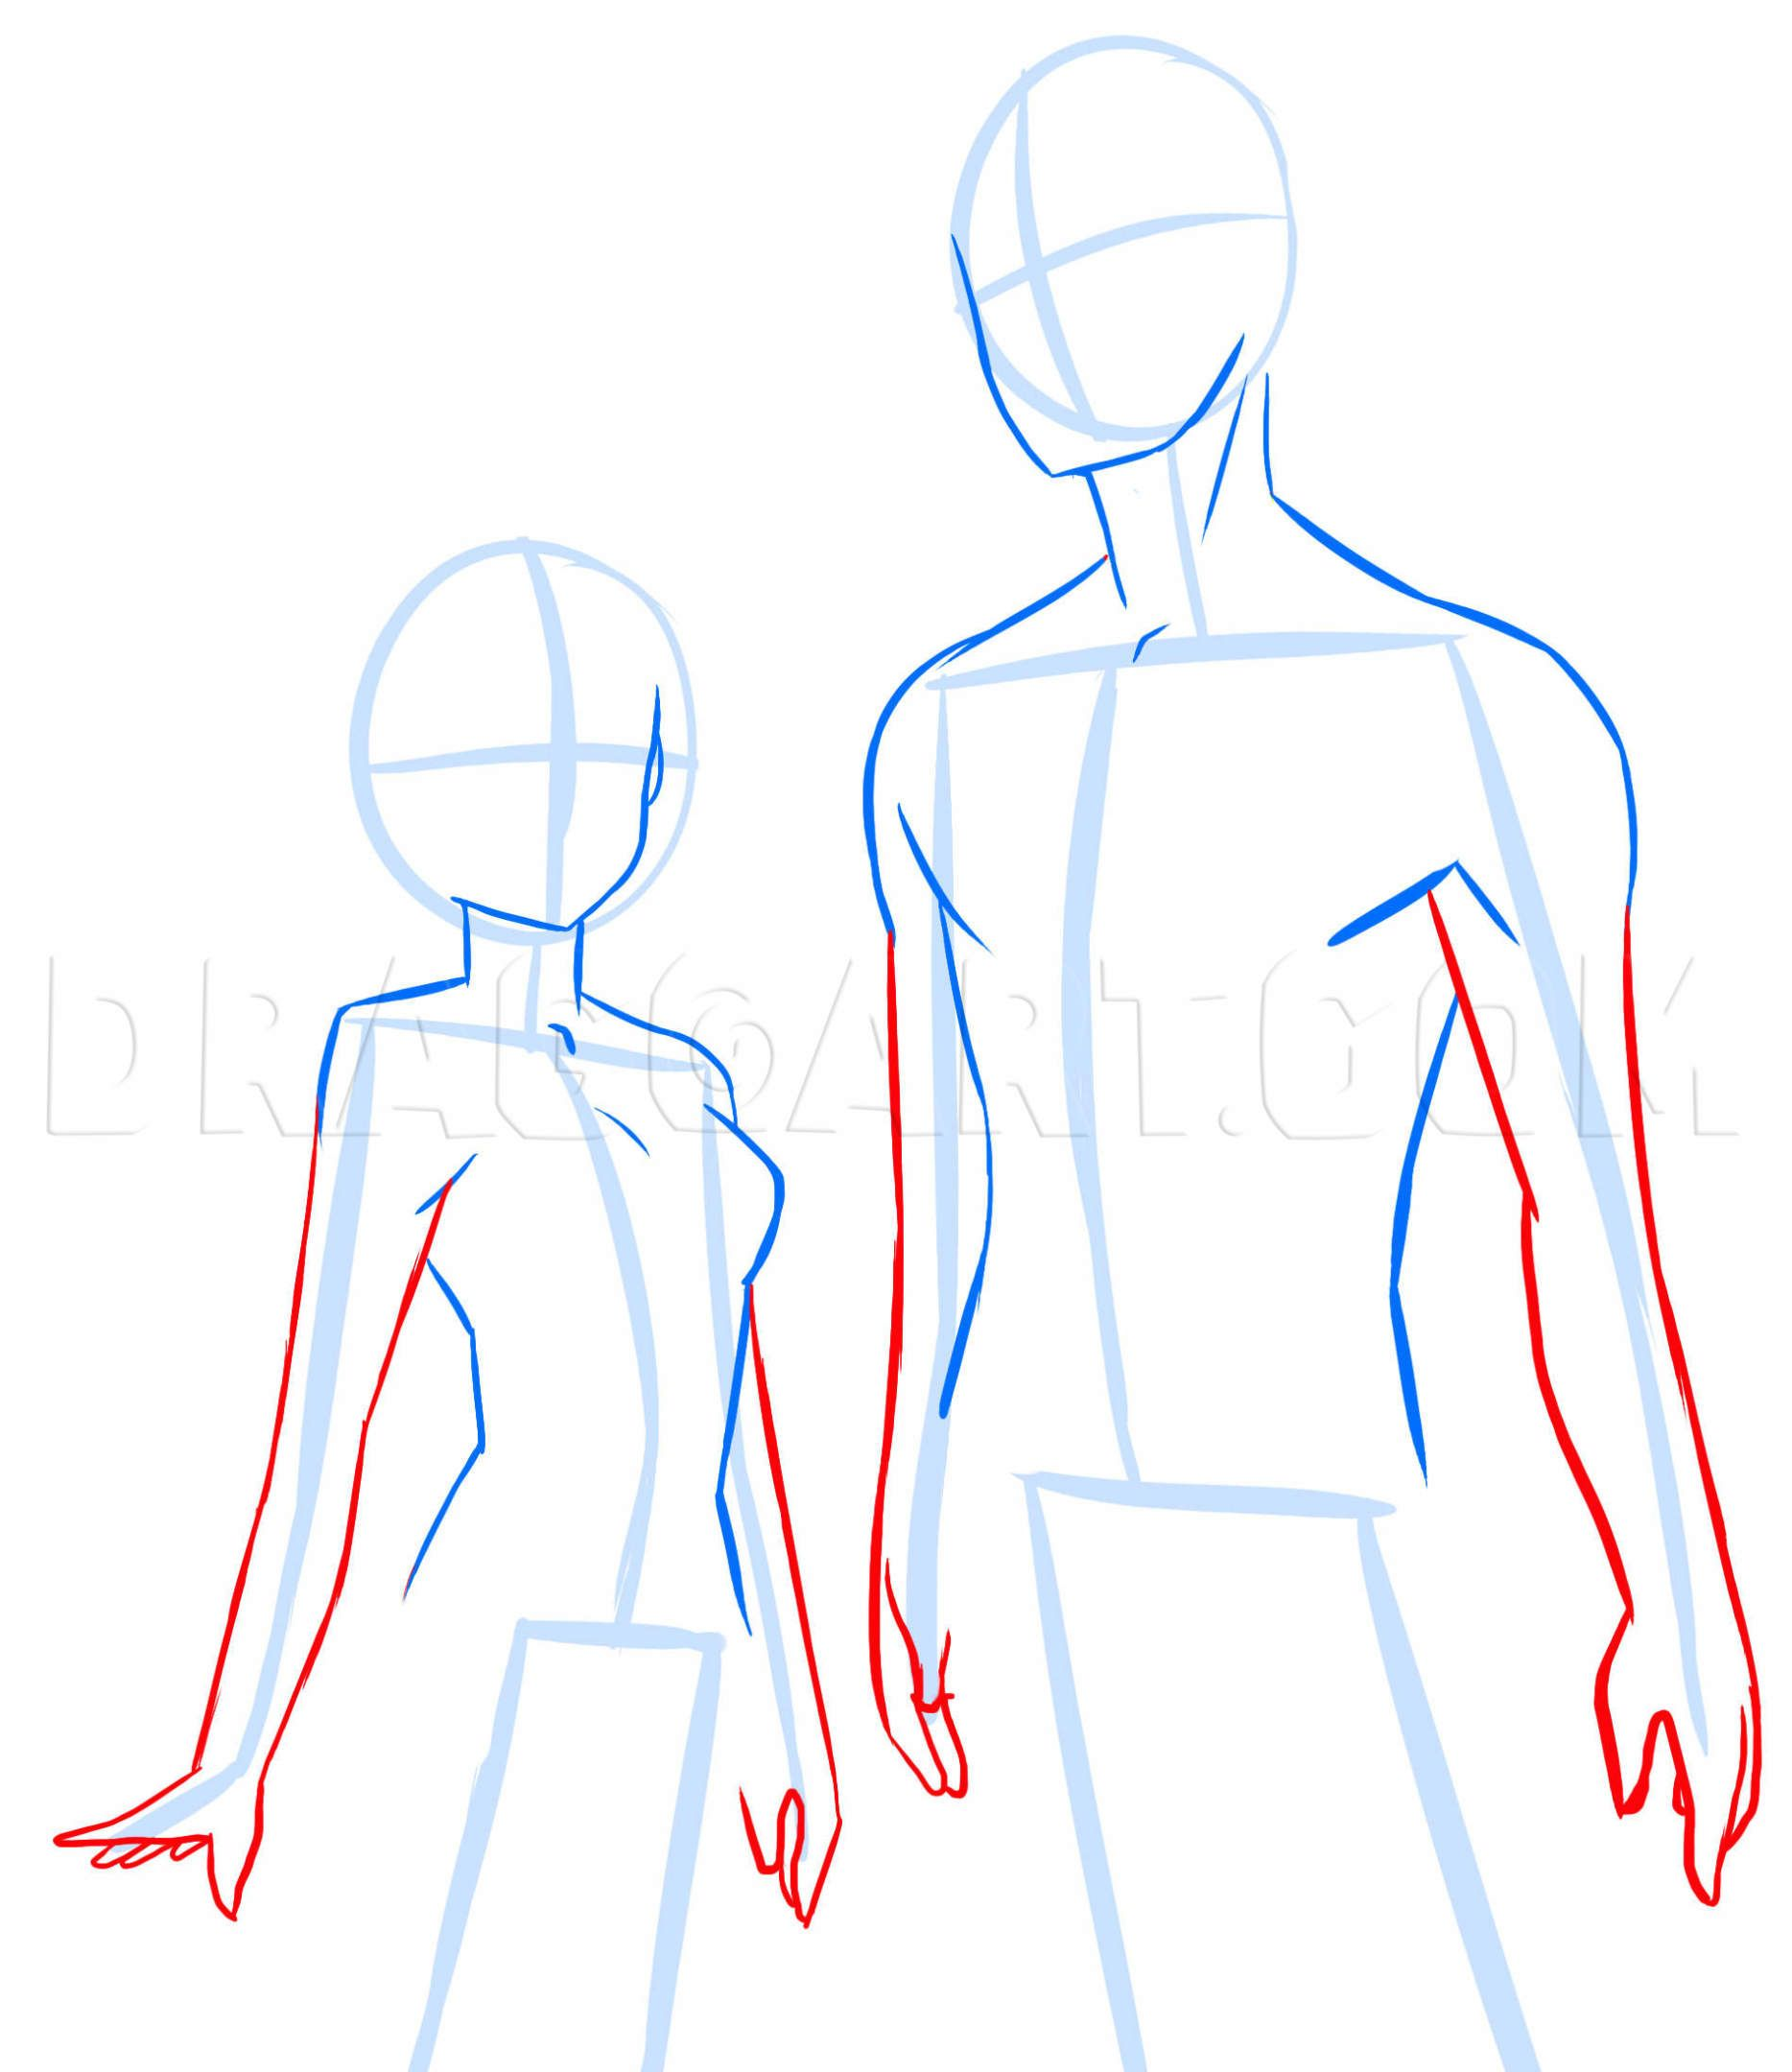 How To Draw Anime Anatomy Step By Step Anatomy People Free Online Drawing Tutorial Added By Puzzlepieces Jan Guided Drawing Drawing Tutorial Drawing Tips